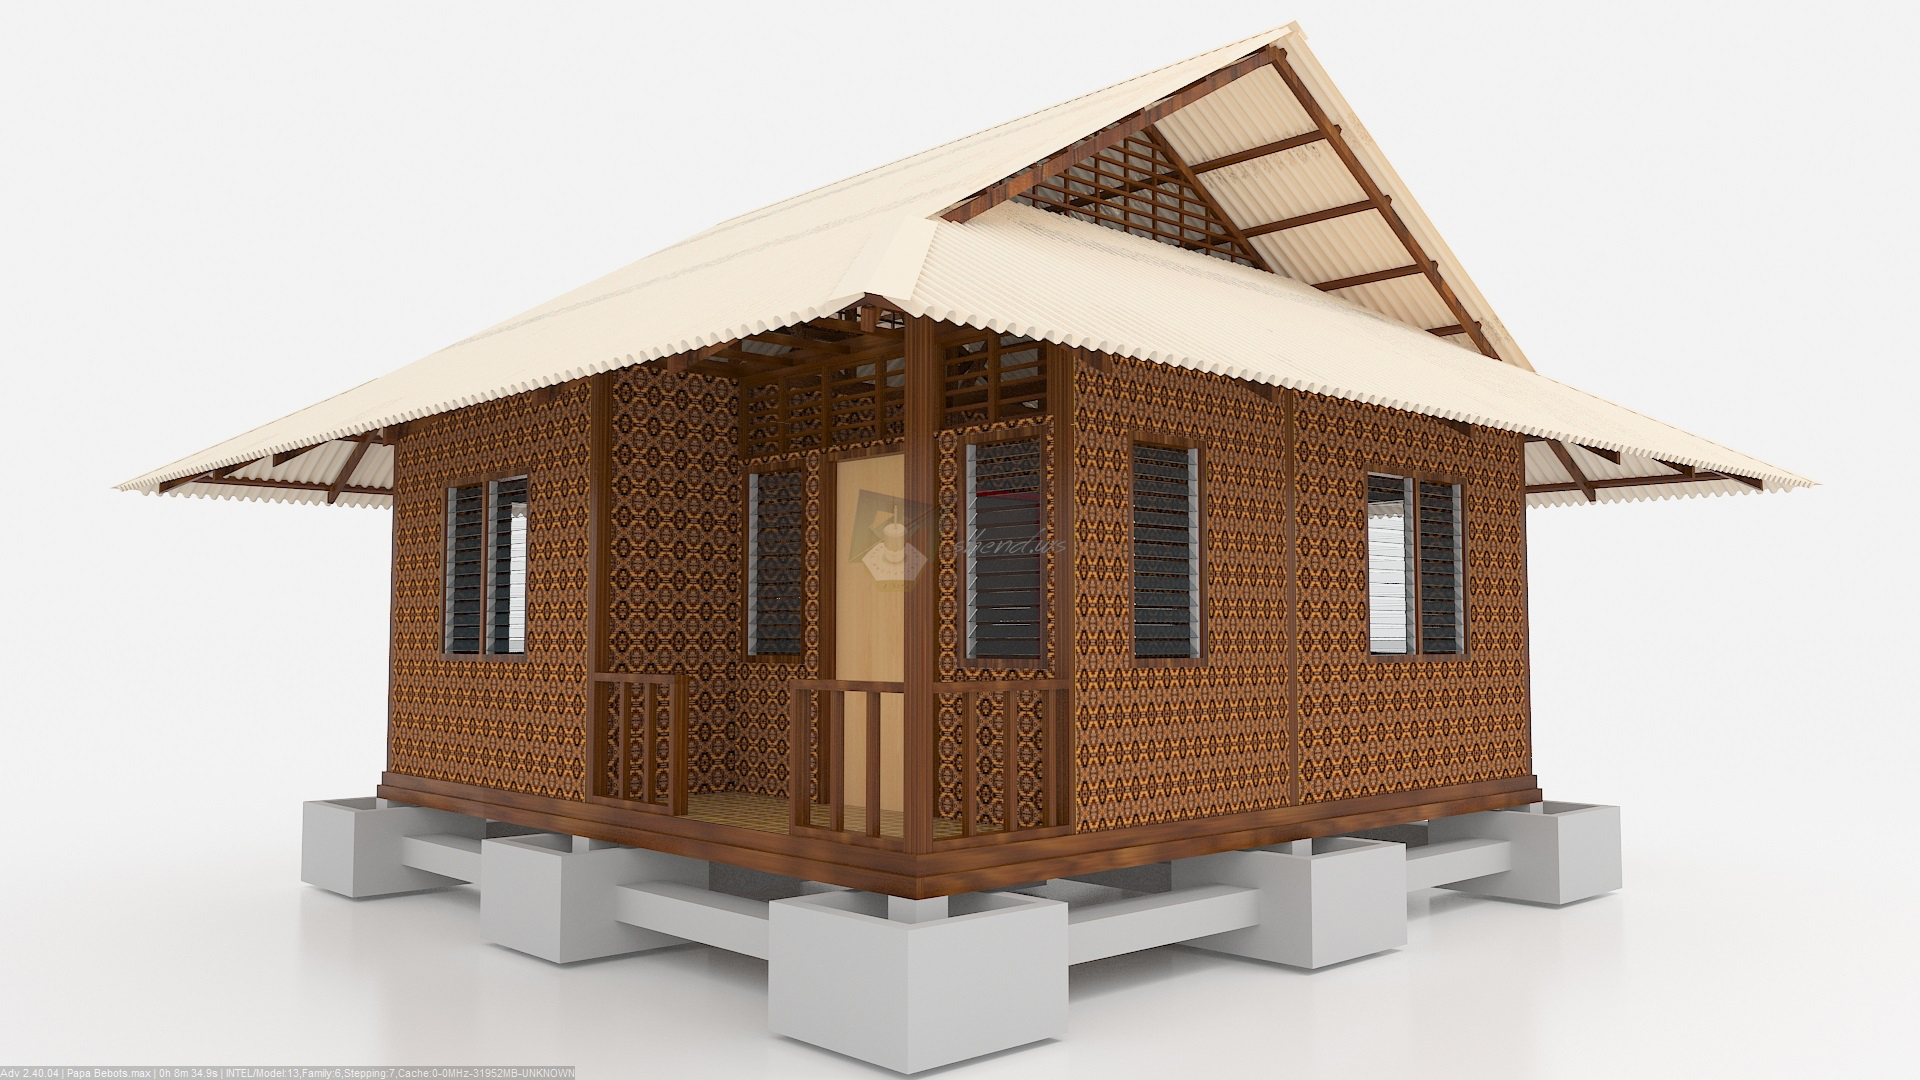 Architecture mix 3d shends shend catz native amakan house design